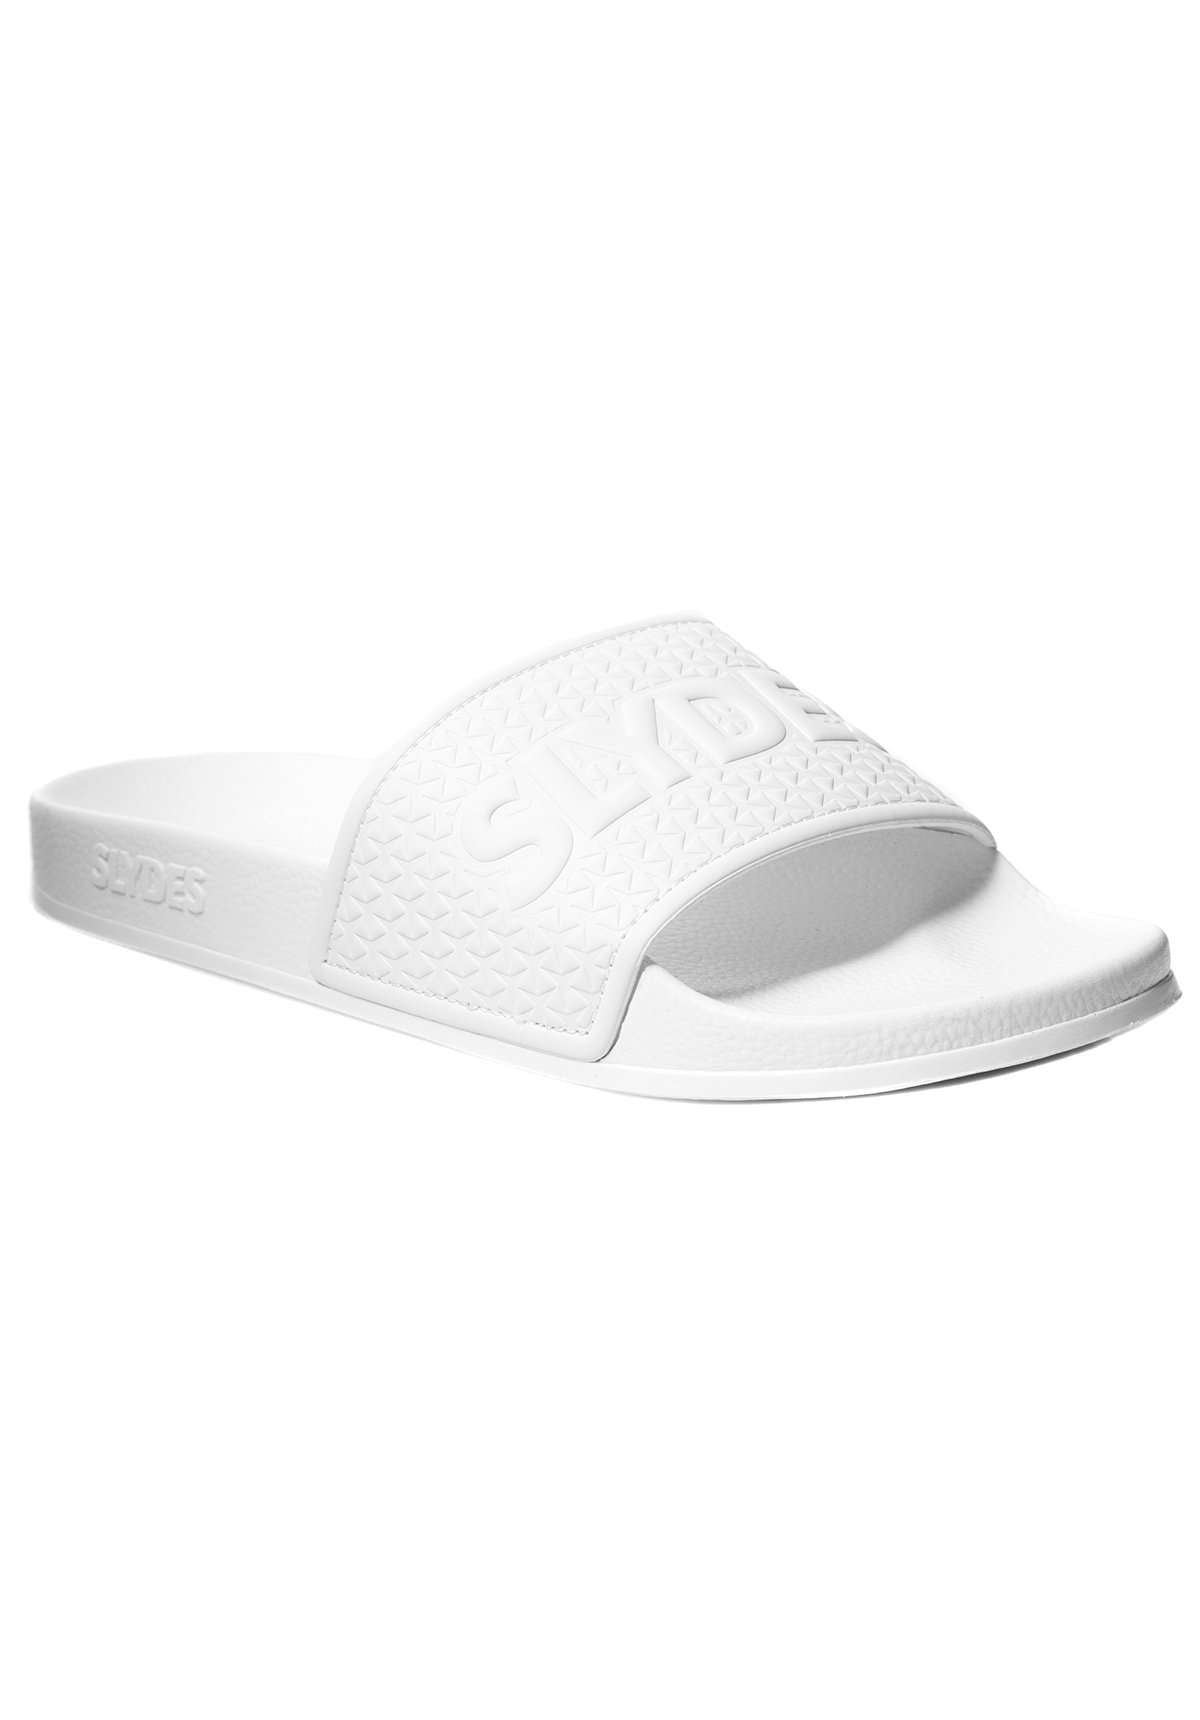 Slydes White Cali Sandals